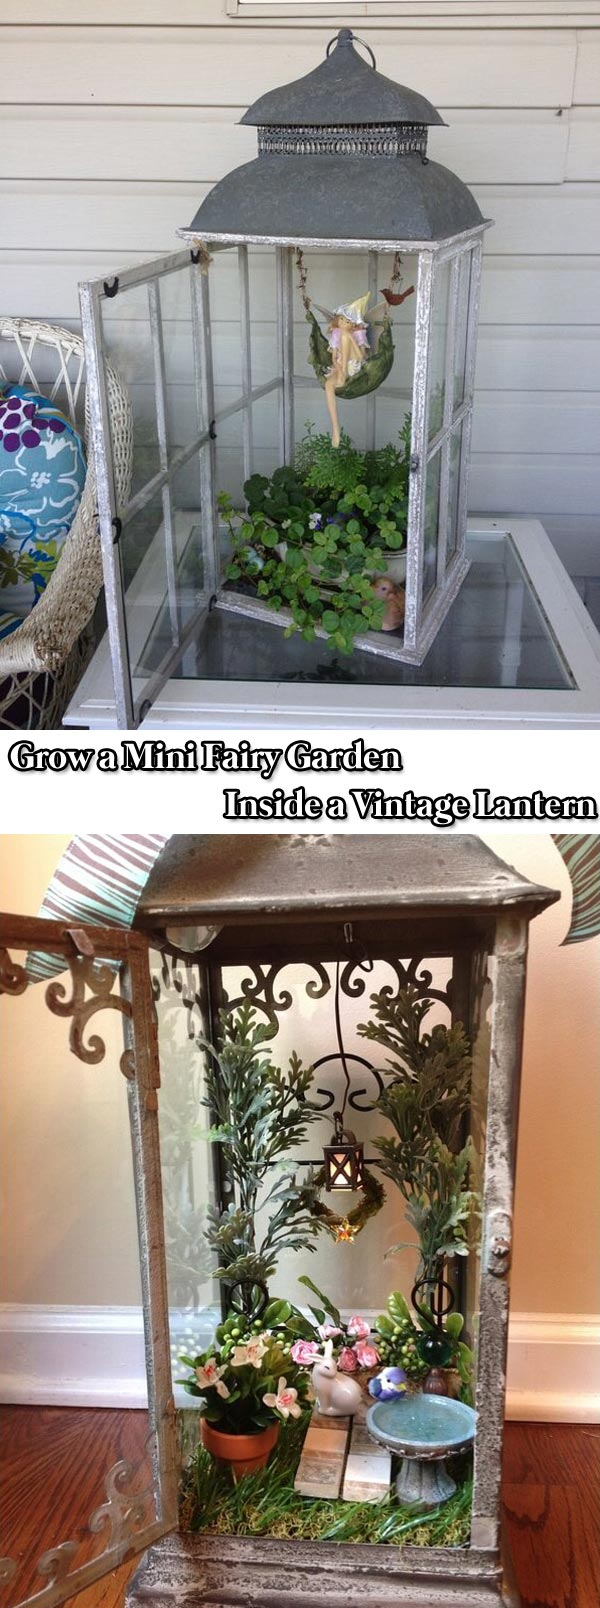 Grow a Mini Fairy Garden Inside a Vintage Lantern